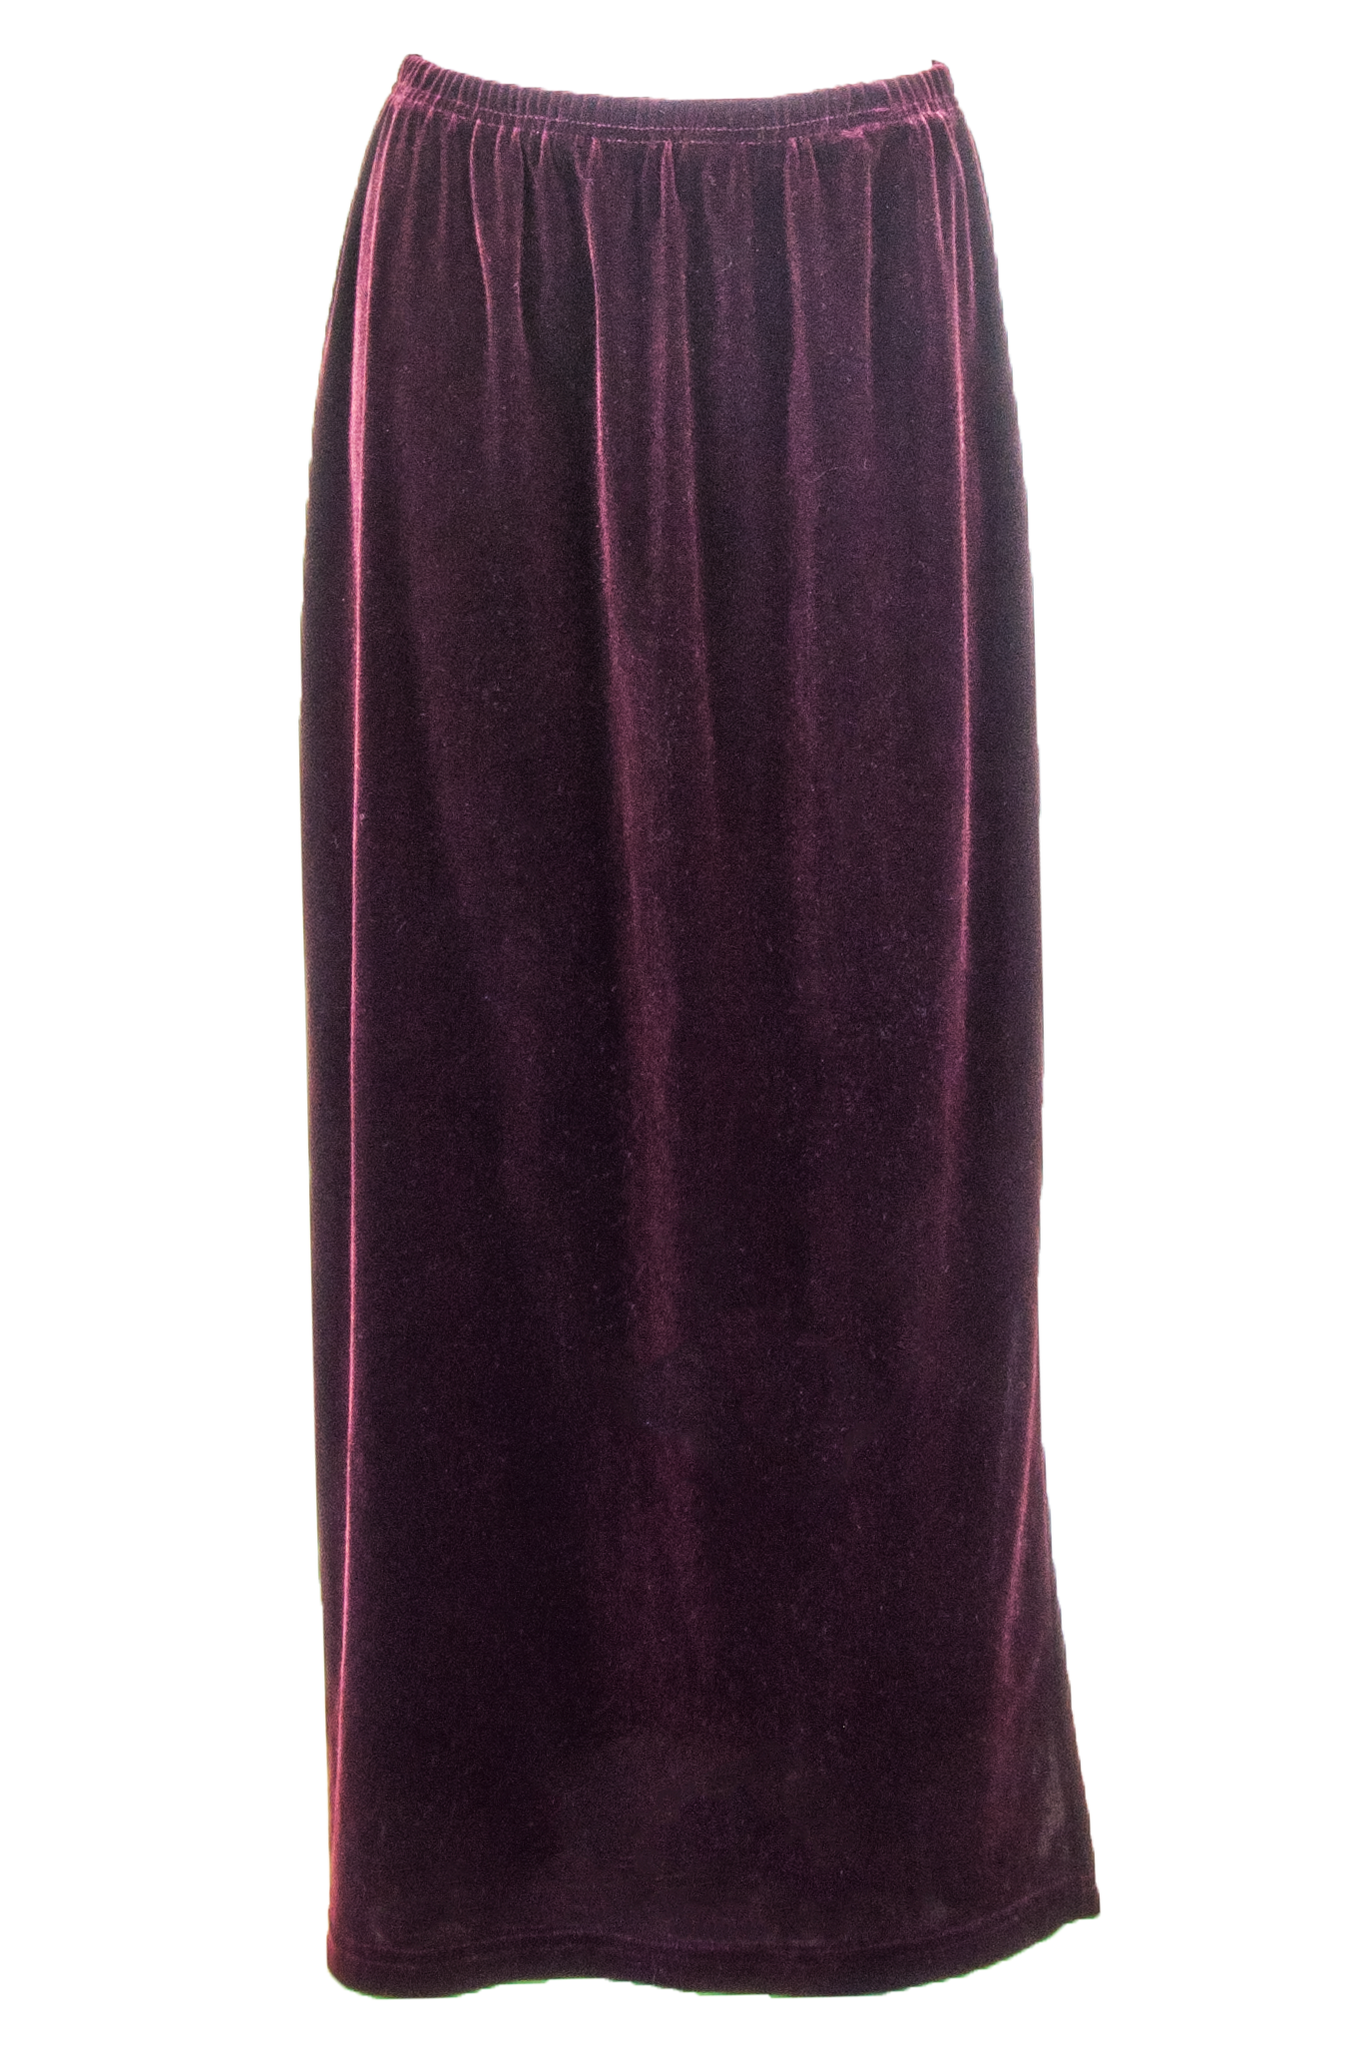 velvet maxi skirt in maroon